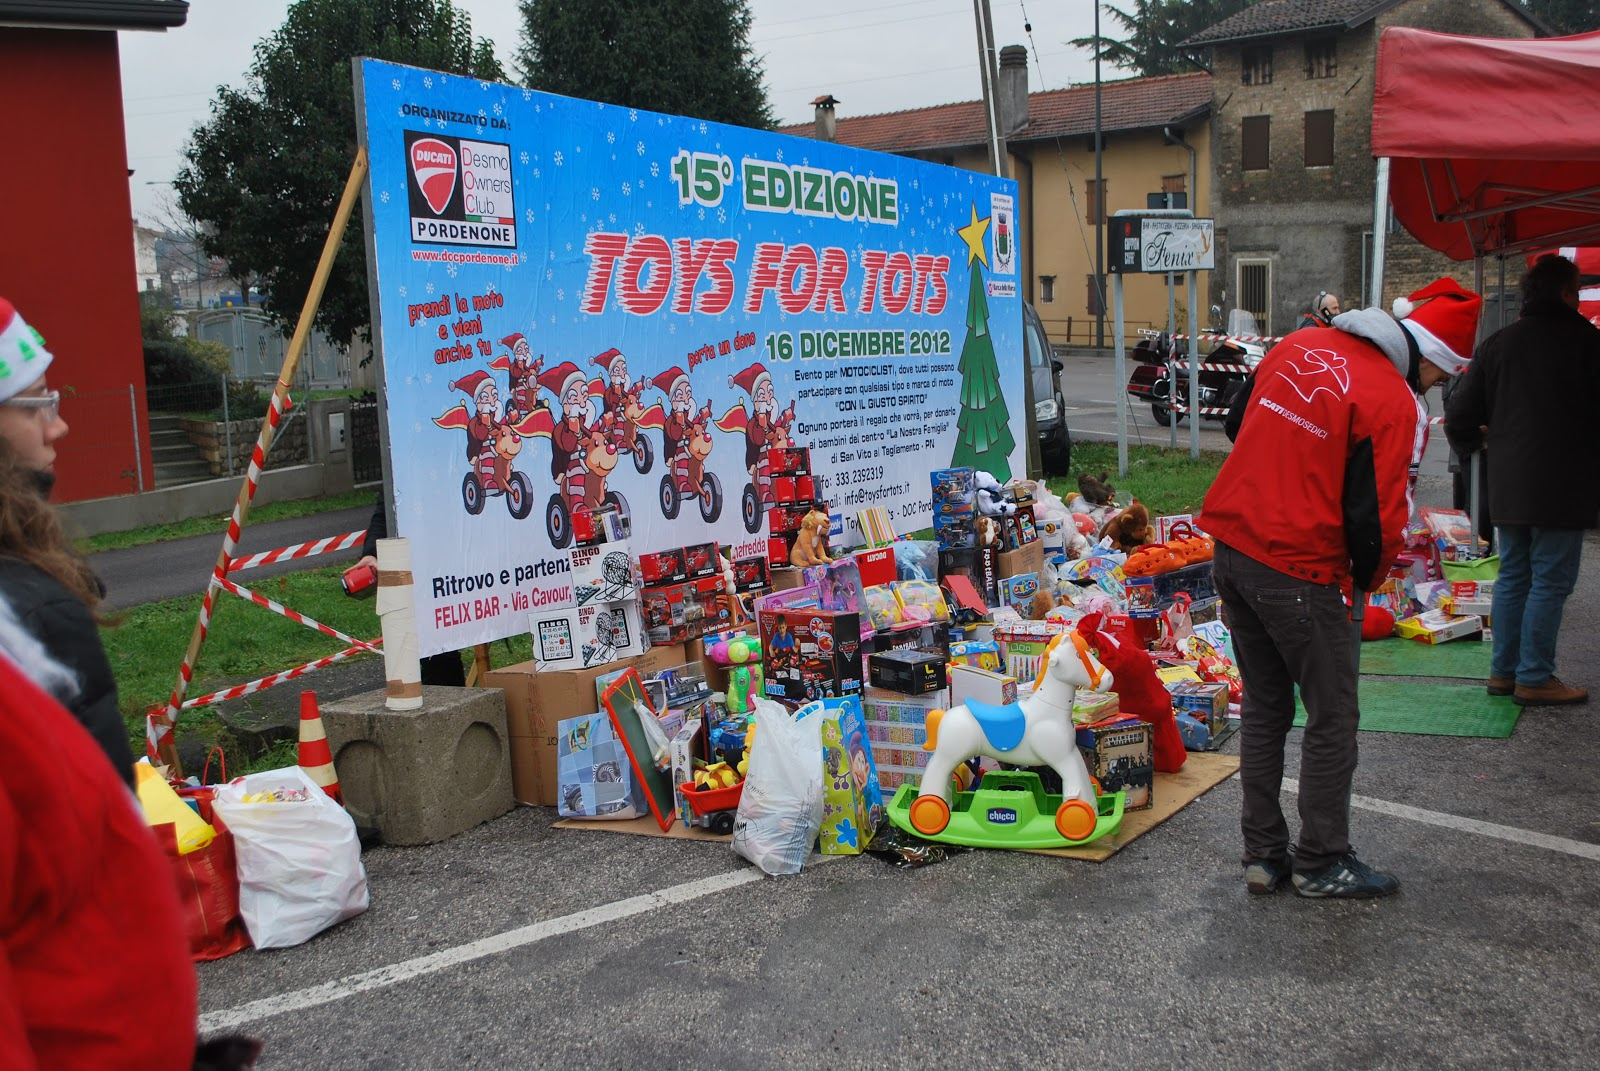 Toys For Tots 2012 : Bcomebimota toys for tots